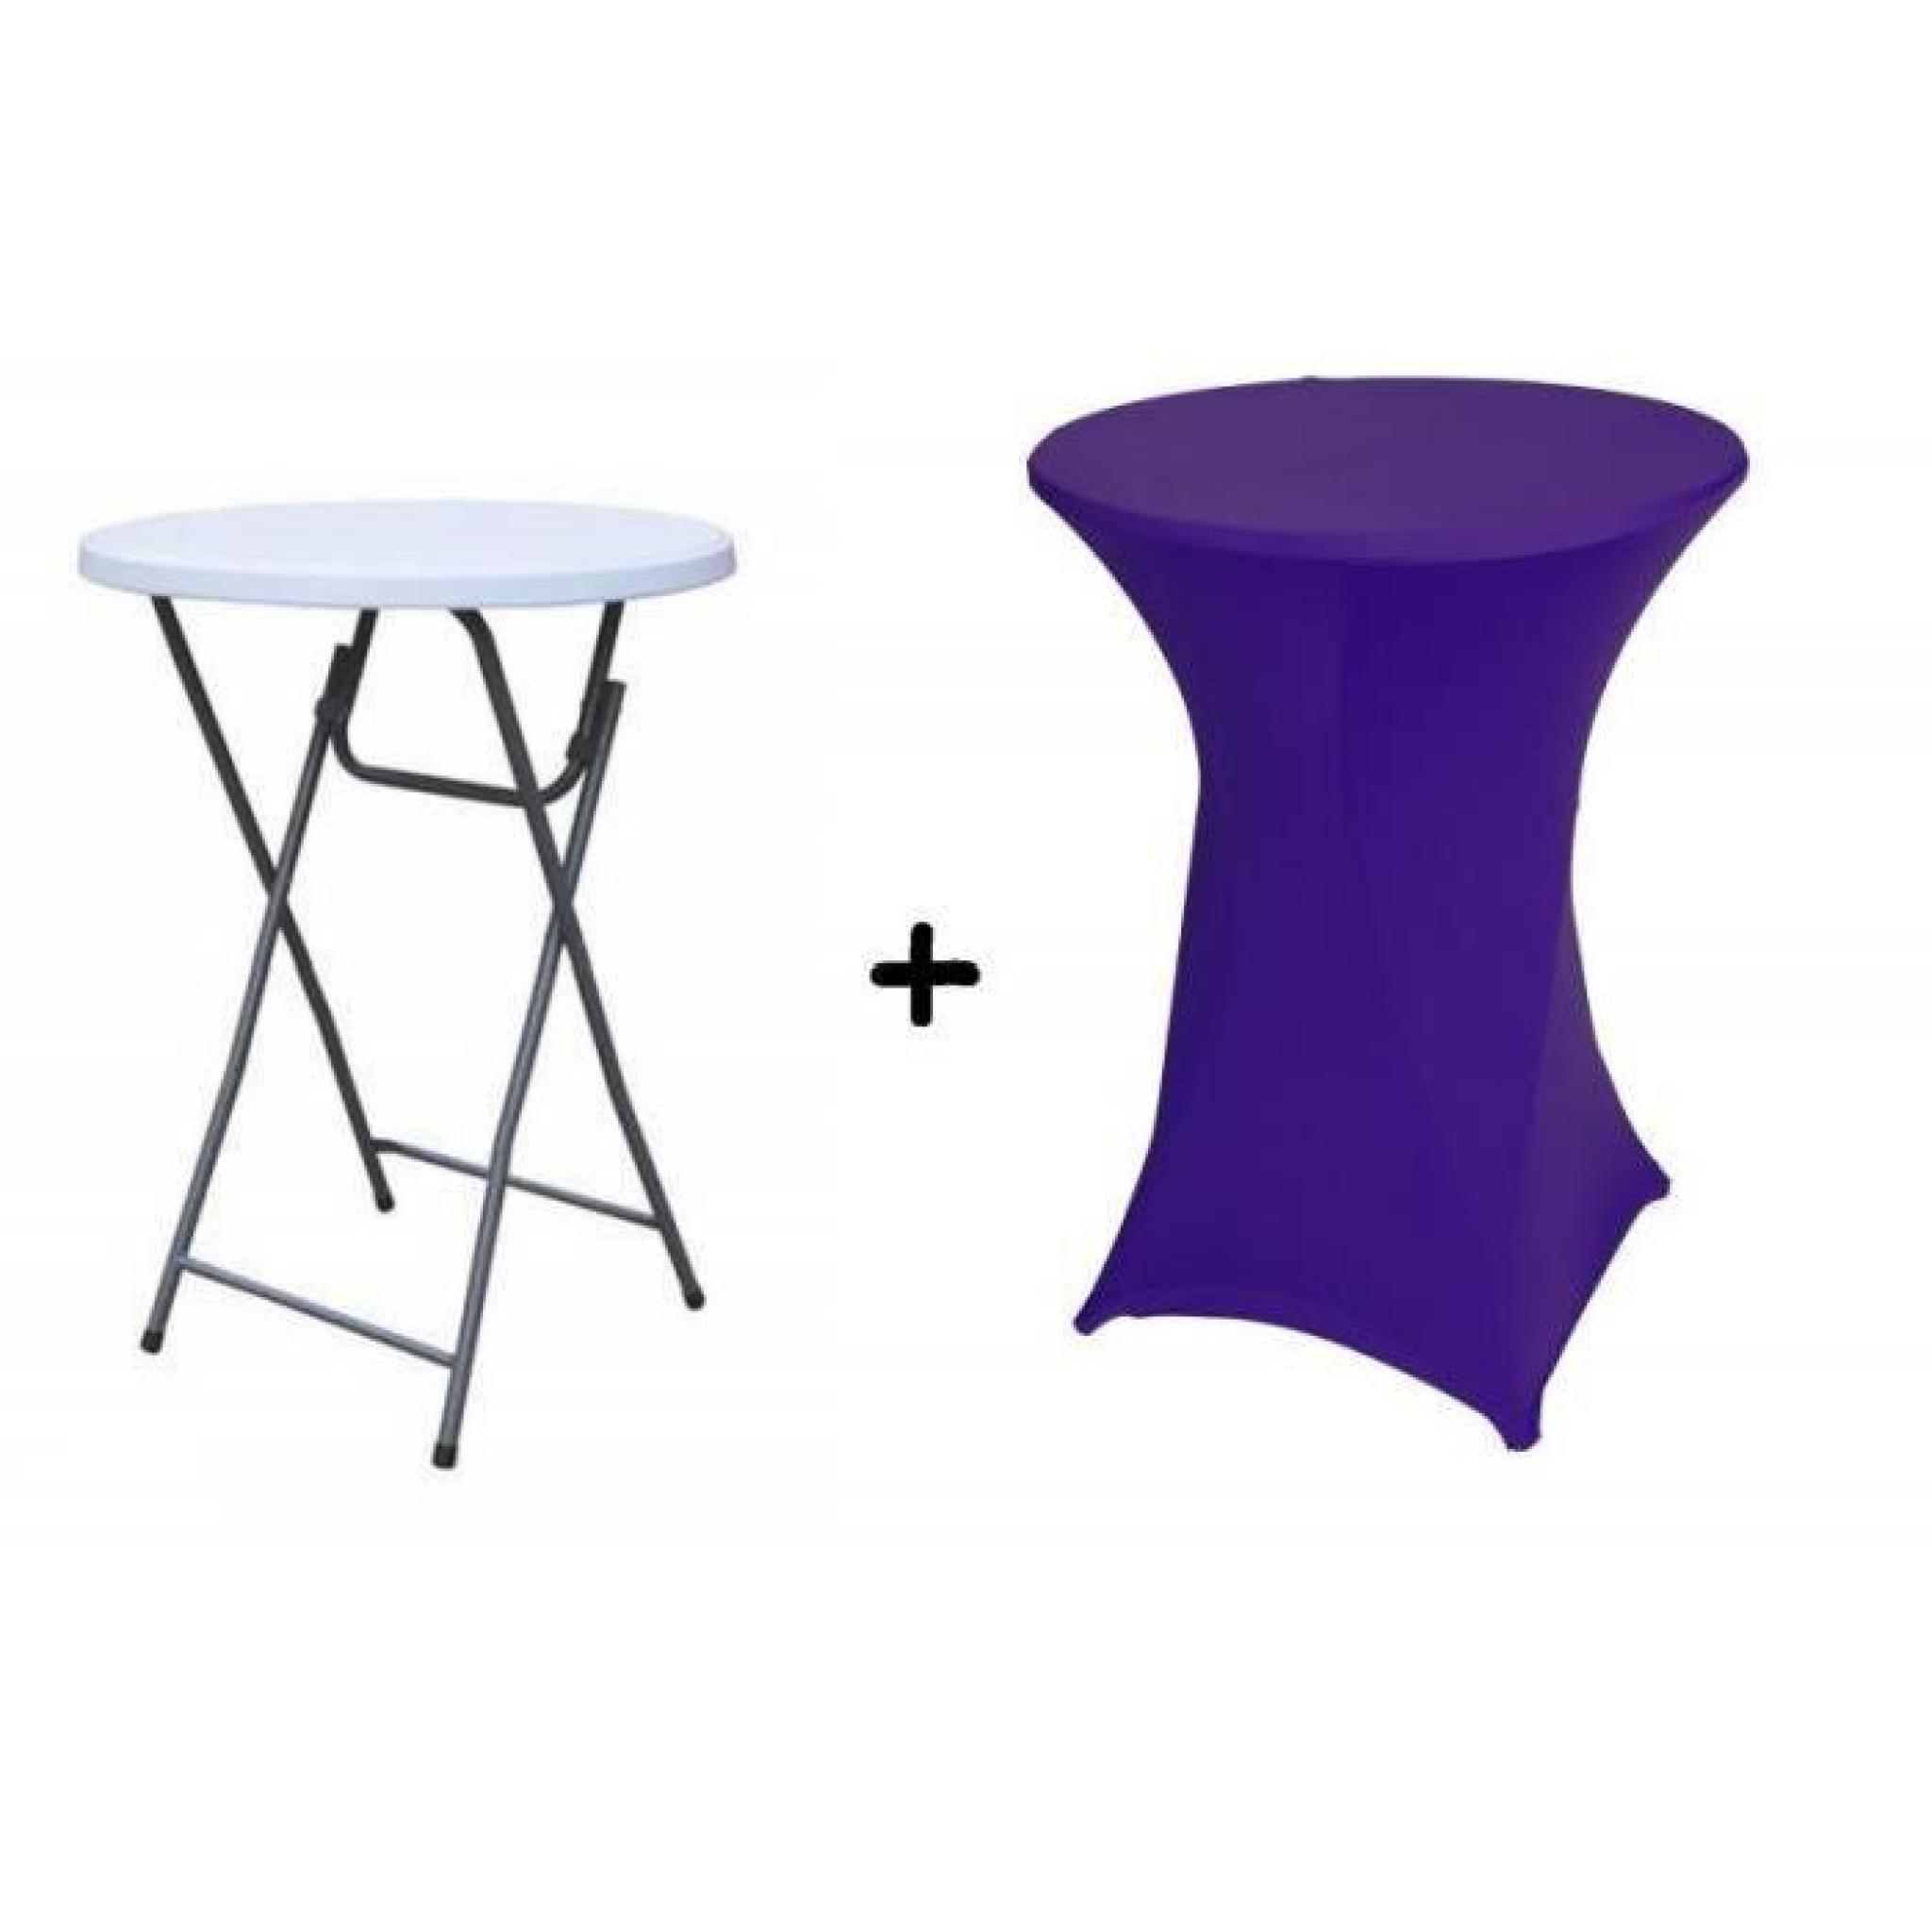 Table haute bar pliante mange debout + Housse violette